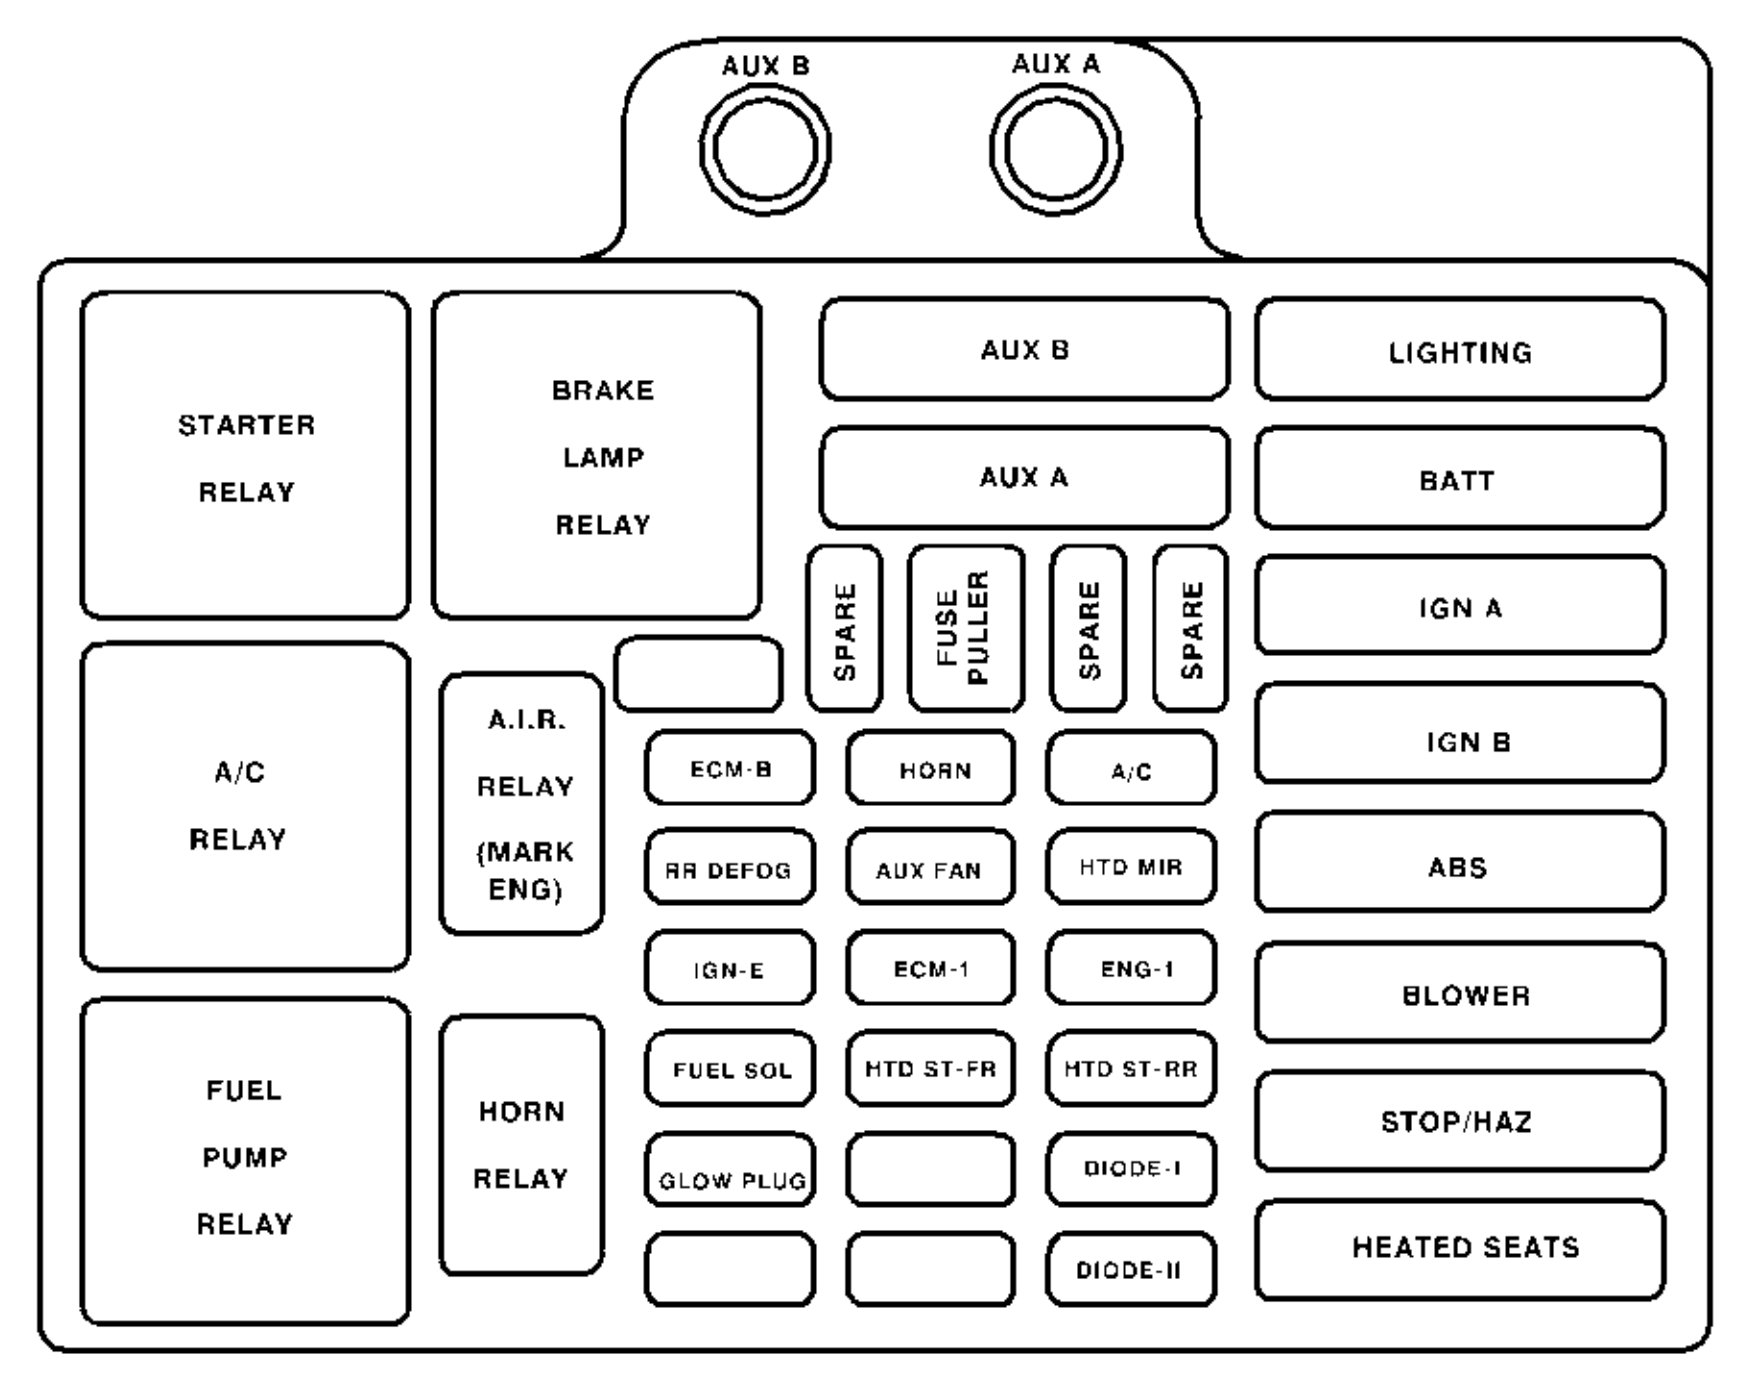 1989 chevy silverado fuse box diagram  u2022 wiring diagram for